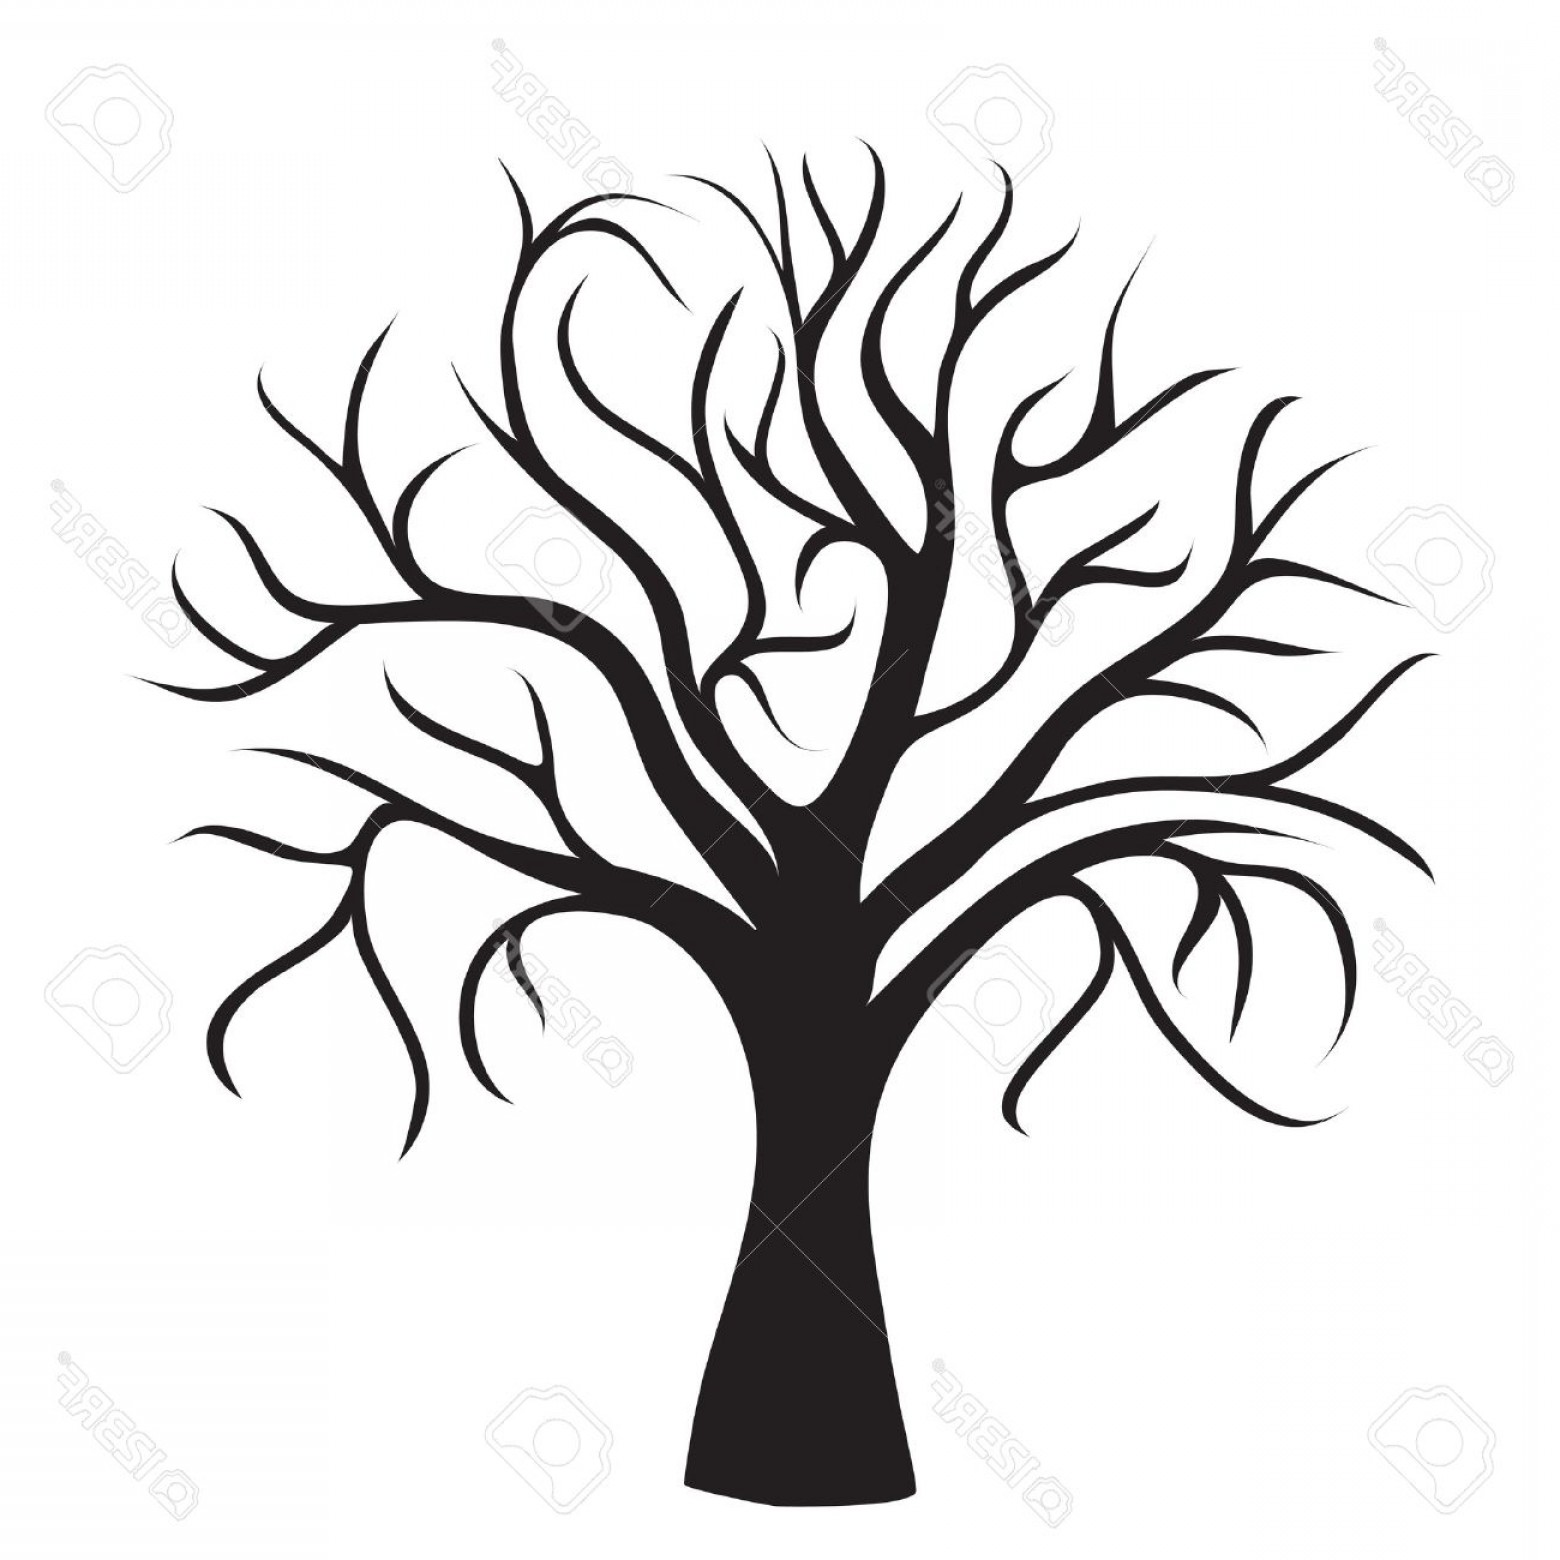 Tree without leaves clipart black and white banner freeuse stock Photoblack Tree Without Leaves On White Background Vector ... banner freeuse stock